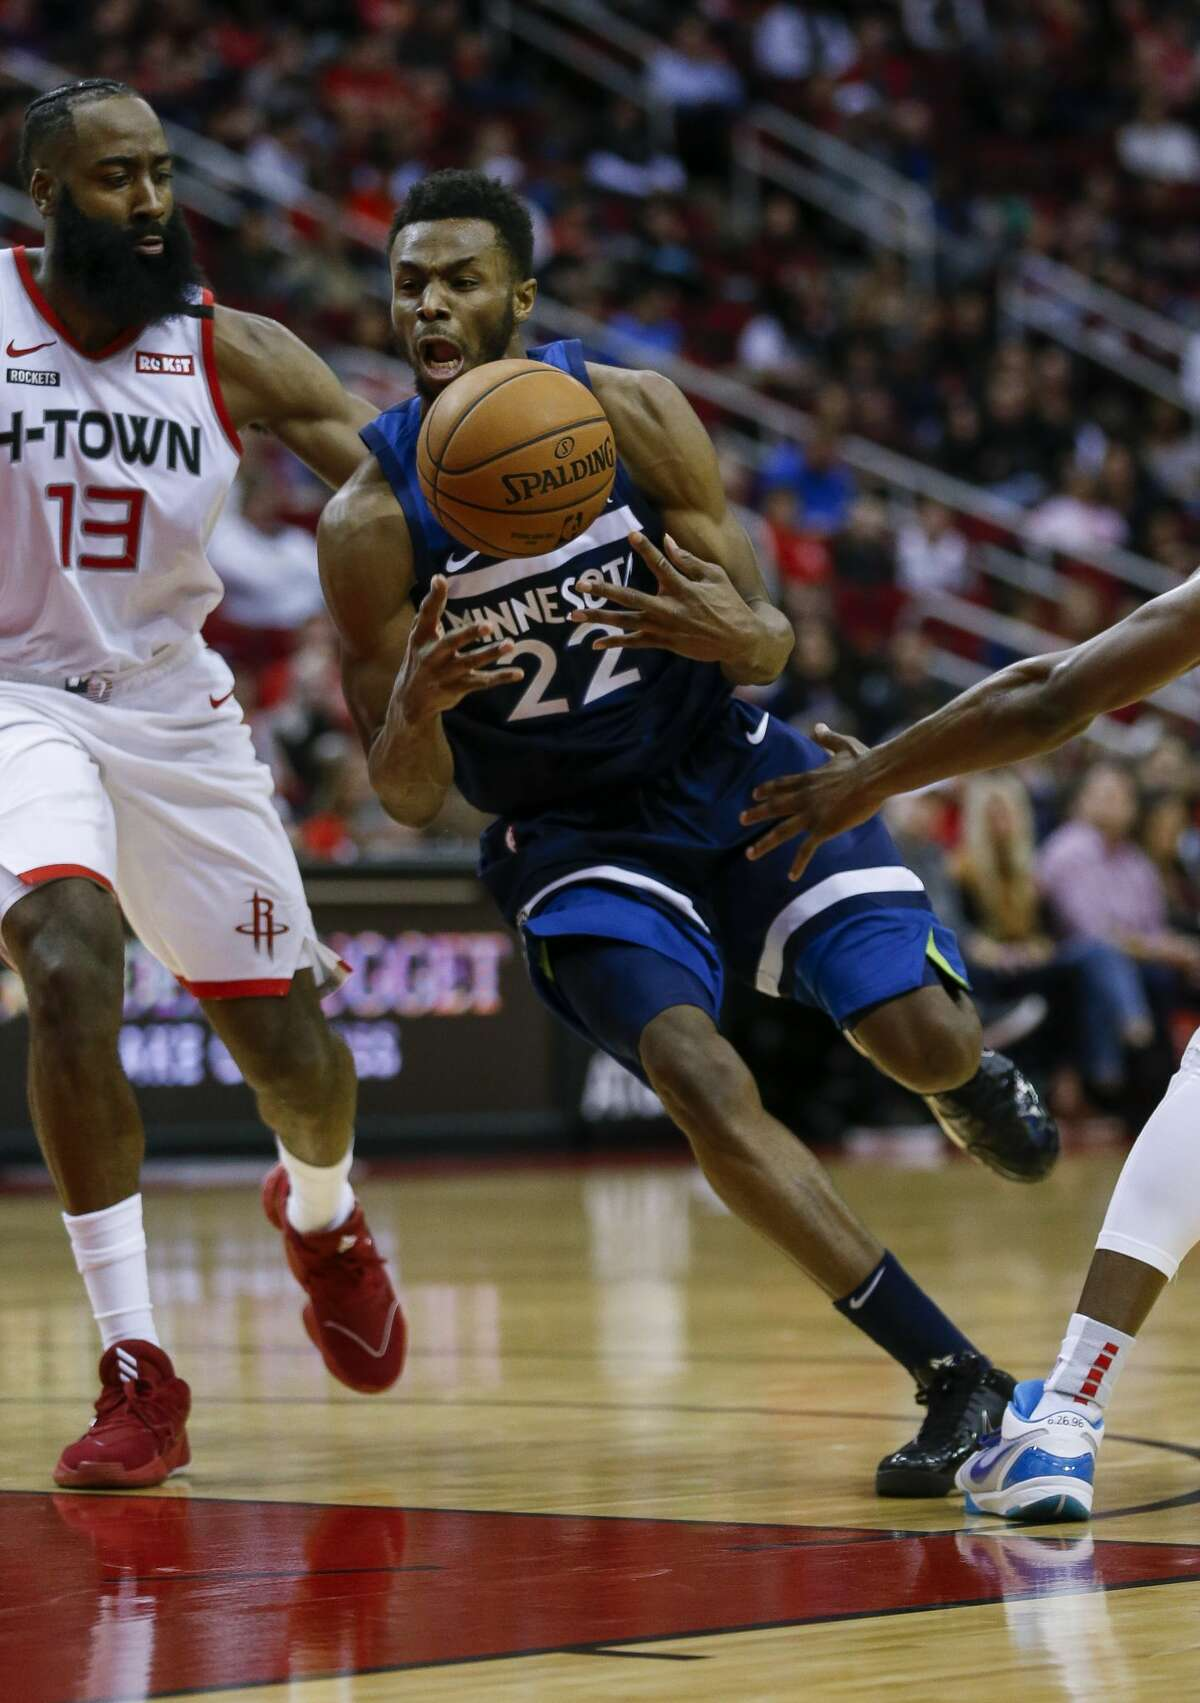 Minnesota Timberwolves forward Andrew Wiggins (22) regains possession of the ball mid-dribble against the Houston Rockets during the first half of an NBA game at the Toyota Center Saturday, Jan. 11, 2020, in Houston. The Rockets won 139-109.